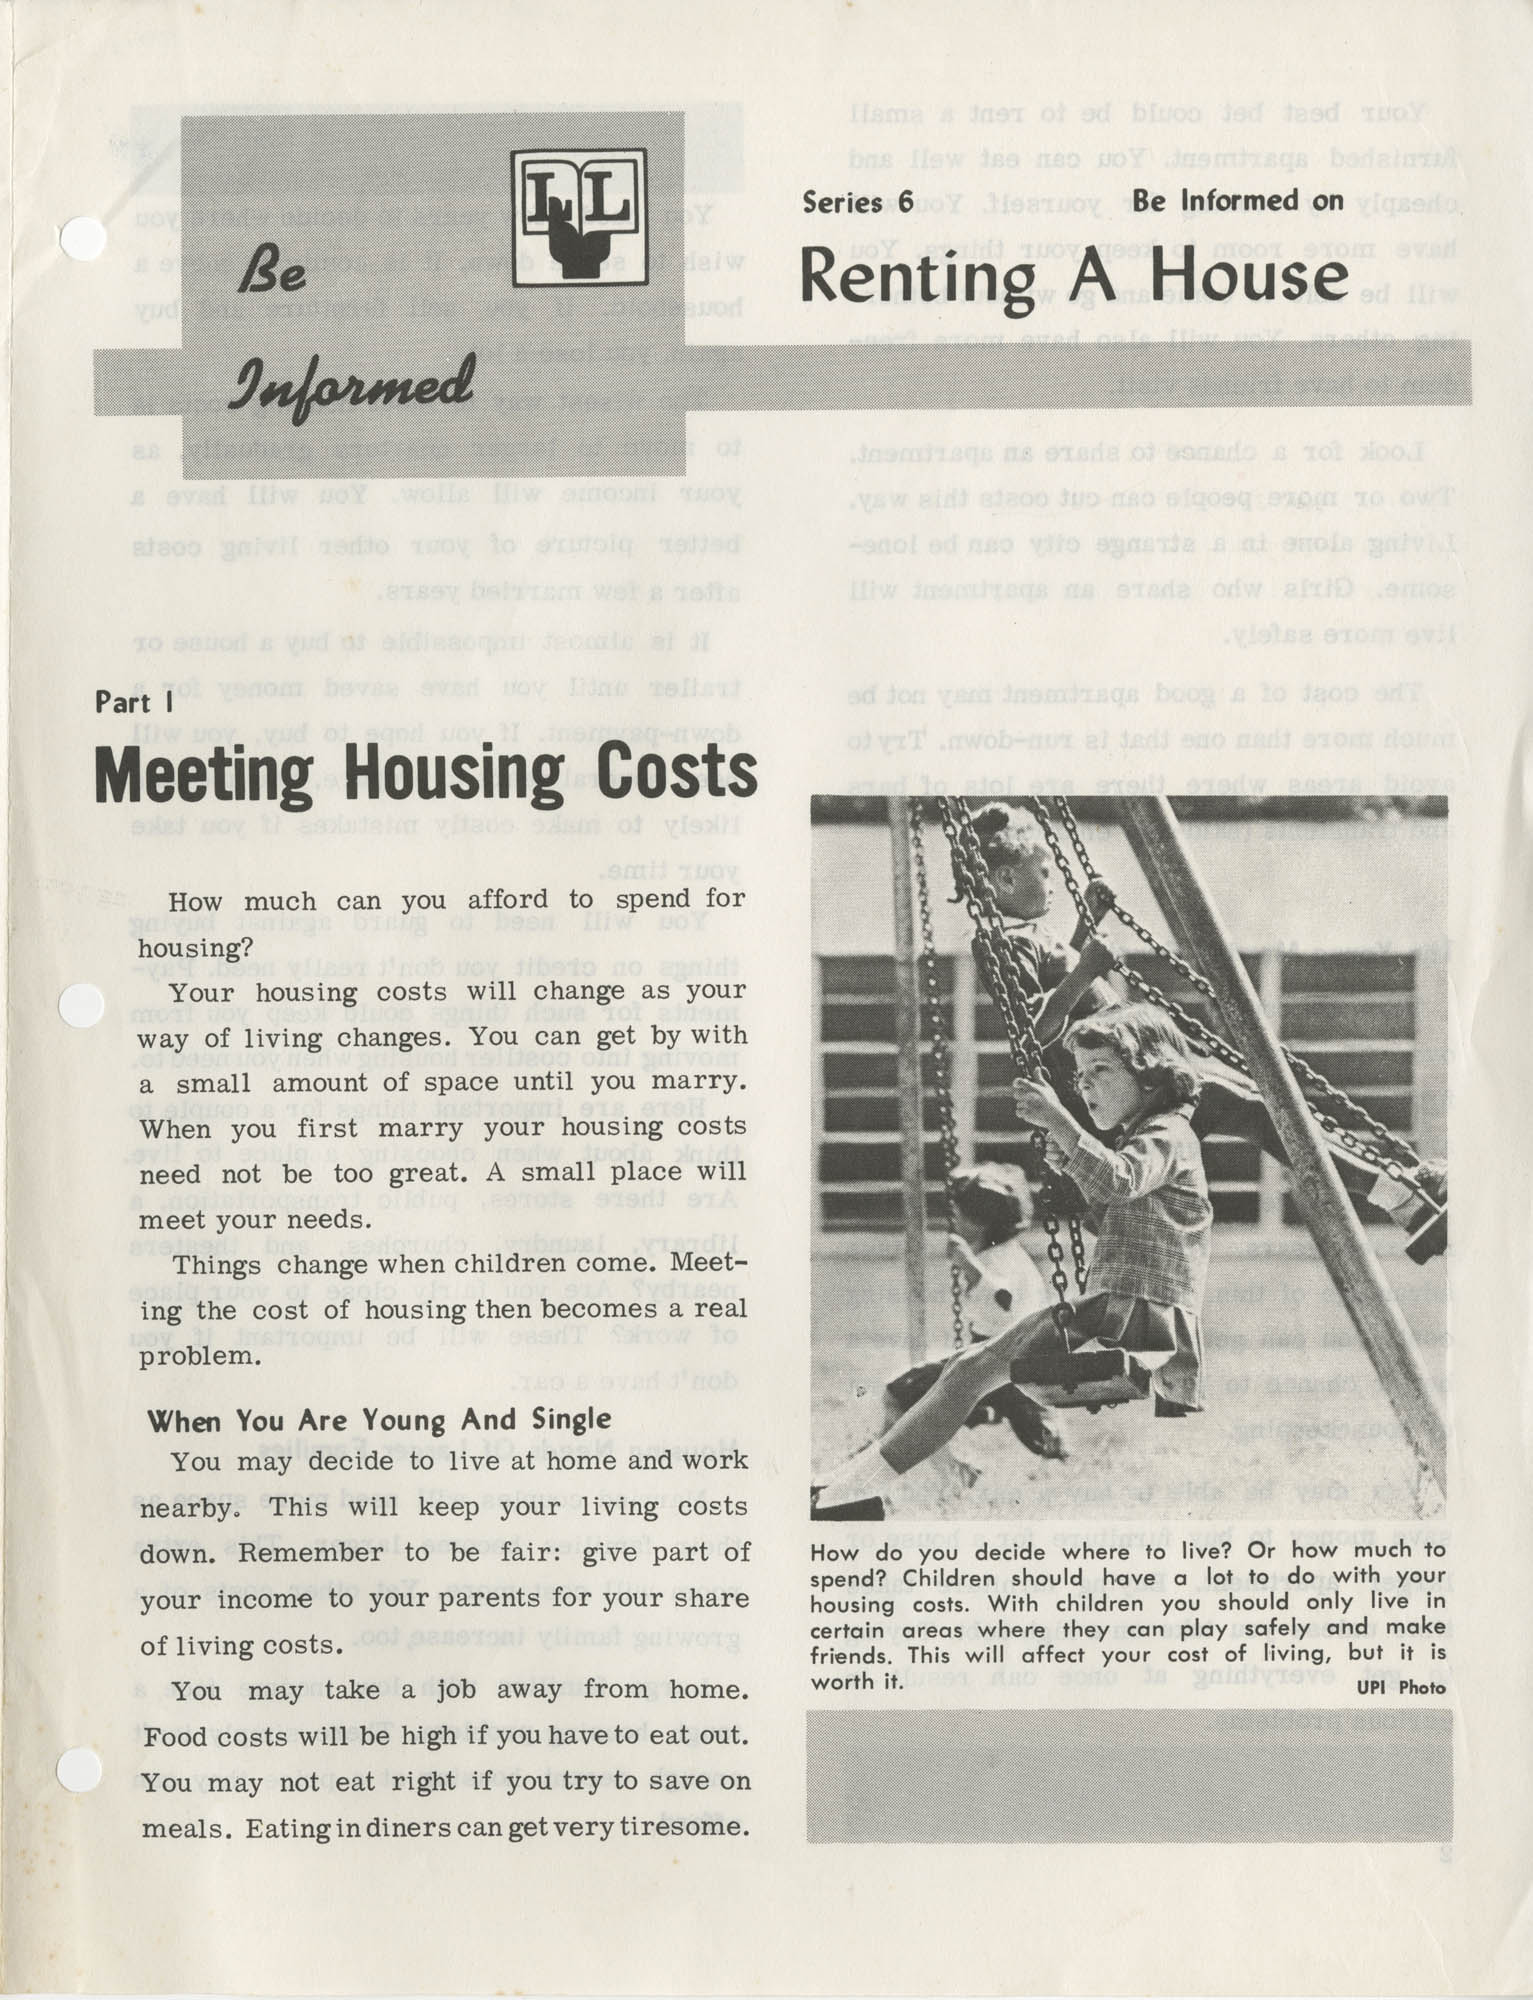 Be Informed, Renting A House, Part 1